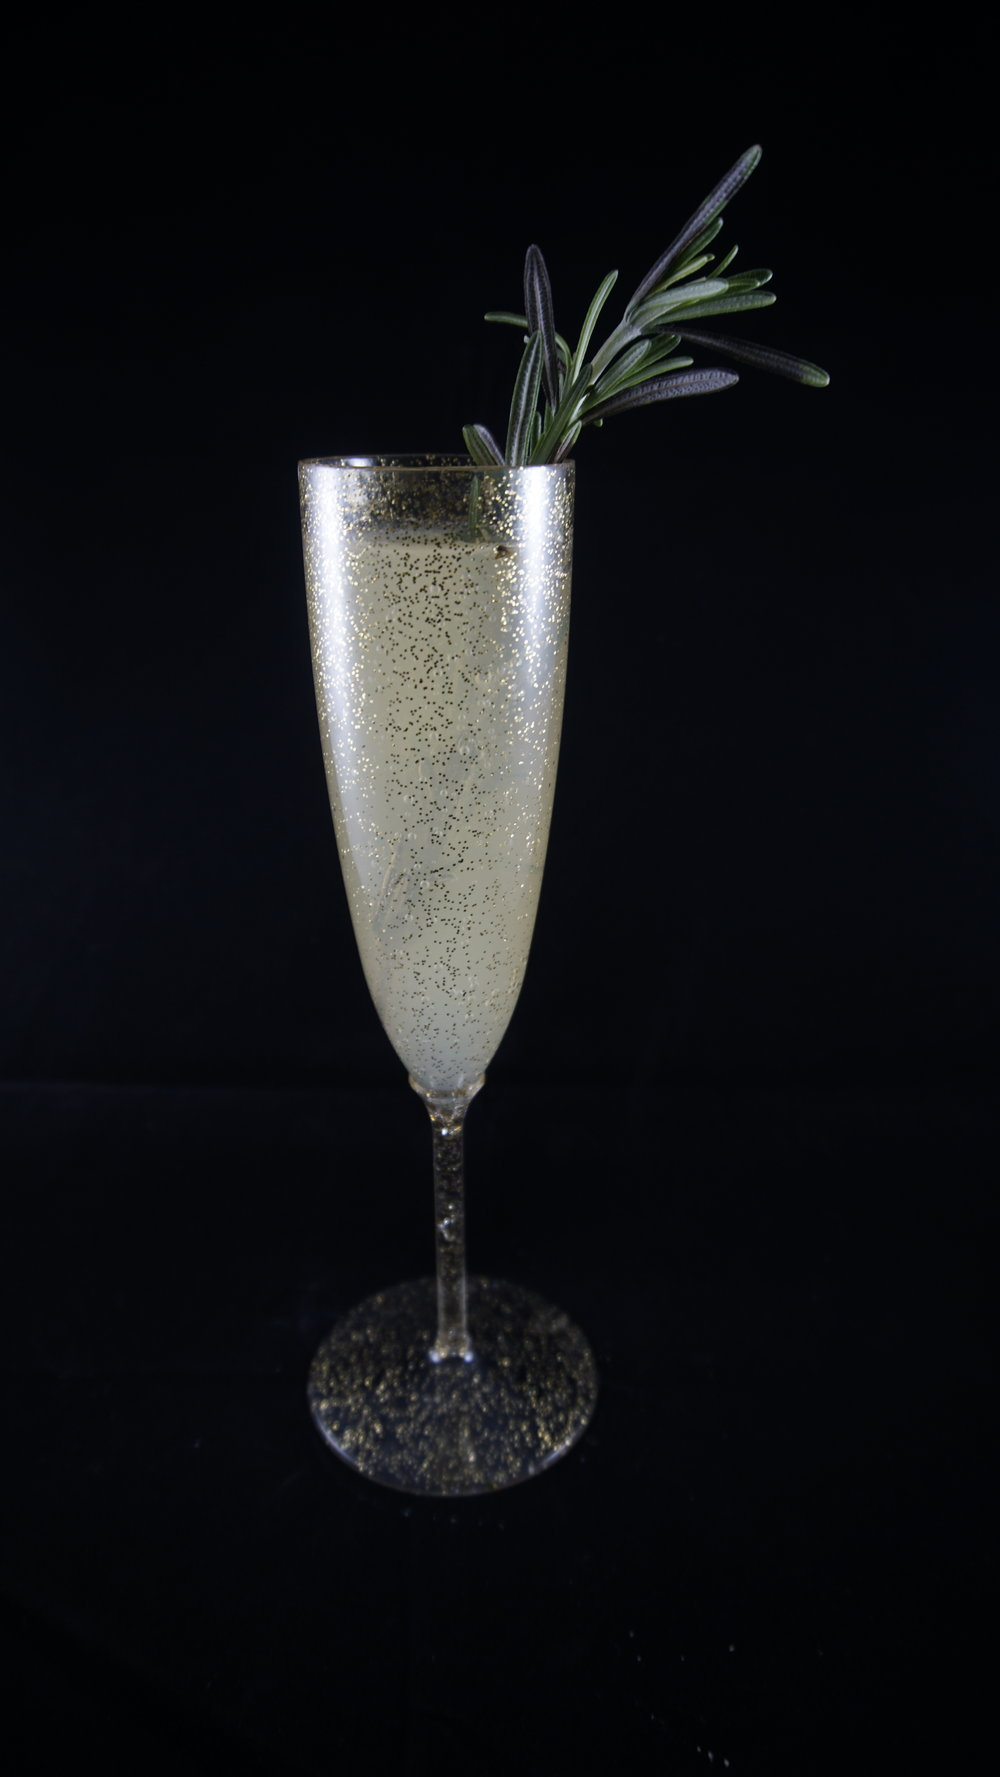 The Love Witch (2016) - 1.5 oz AbsintheSplash of rosemary simple syrupDry champagneFresh rosemary Pour absinthe and rosemary simple syrup in a shaker over ice. Shake until well chilled, then our in a glass and top with champagne. Add fresh spring of rosemary for garnish.